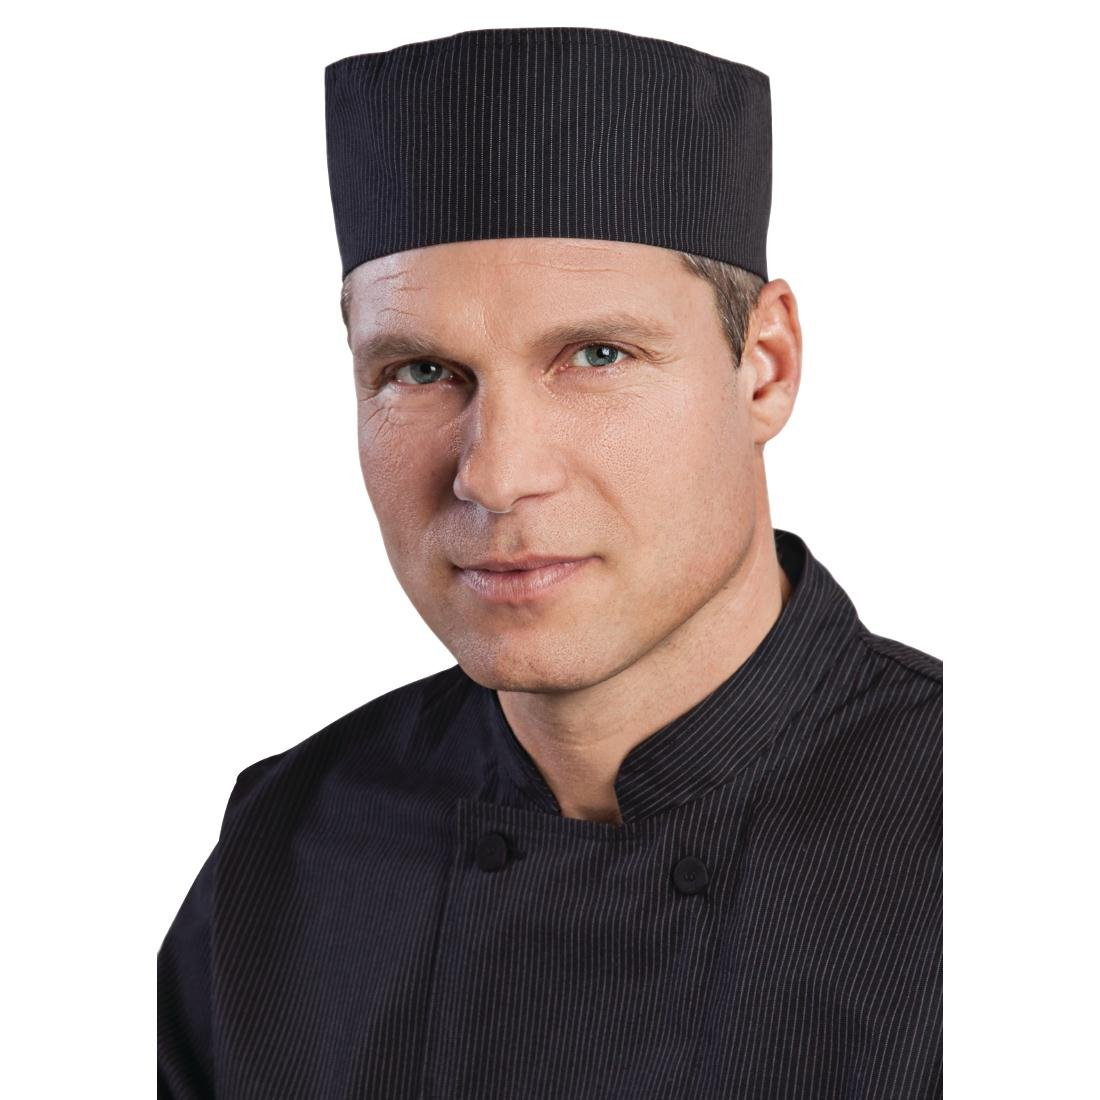 Gorro cocina beanie chef works cool vent